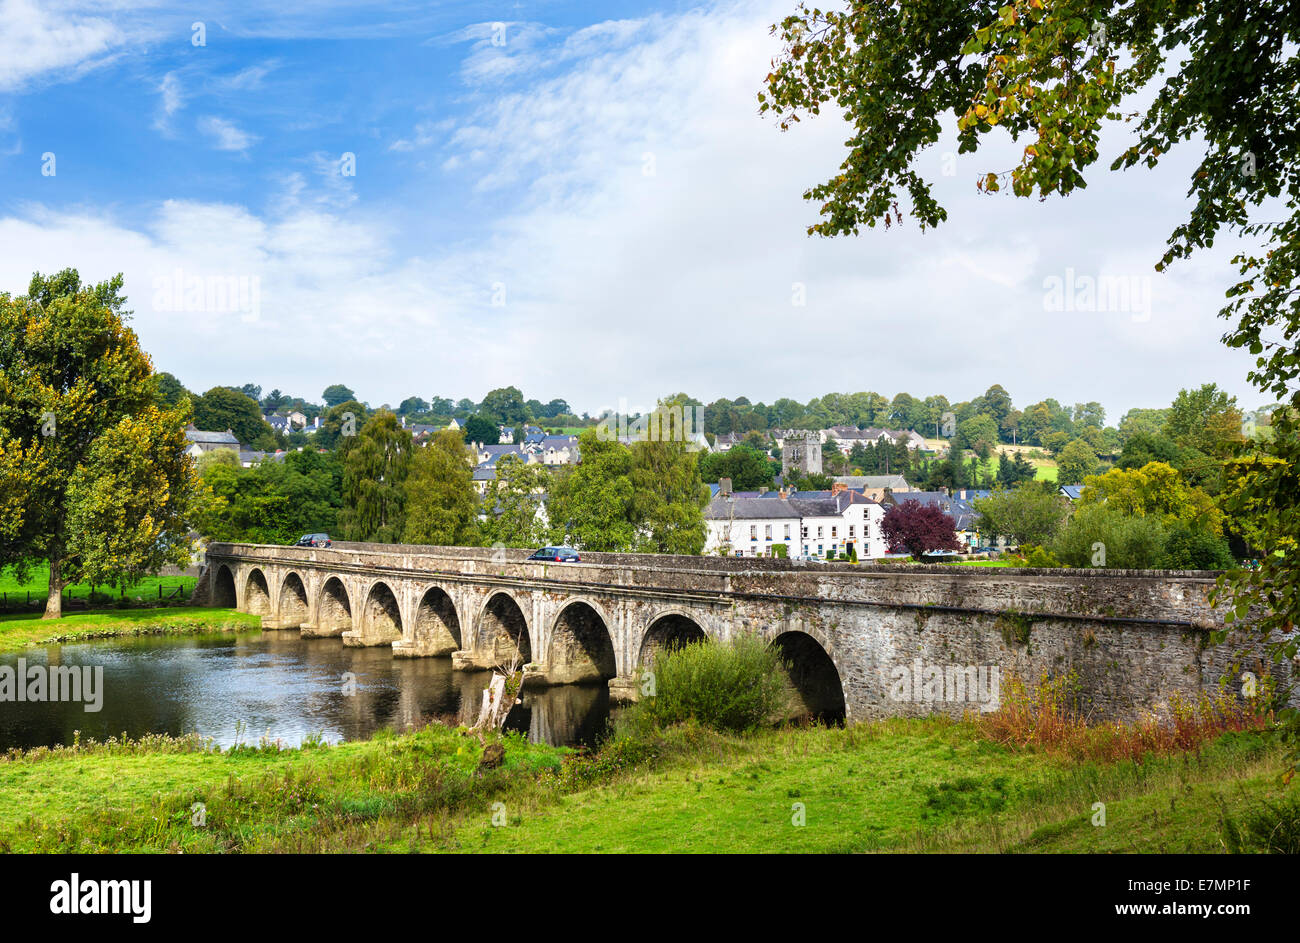 Bridge over the River Nore in Inistioge, County Kilkenny, Republic of Ireland - Stock Image